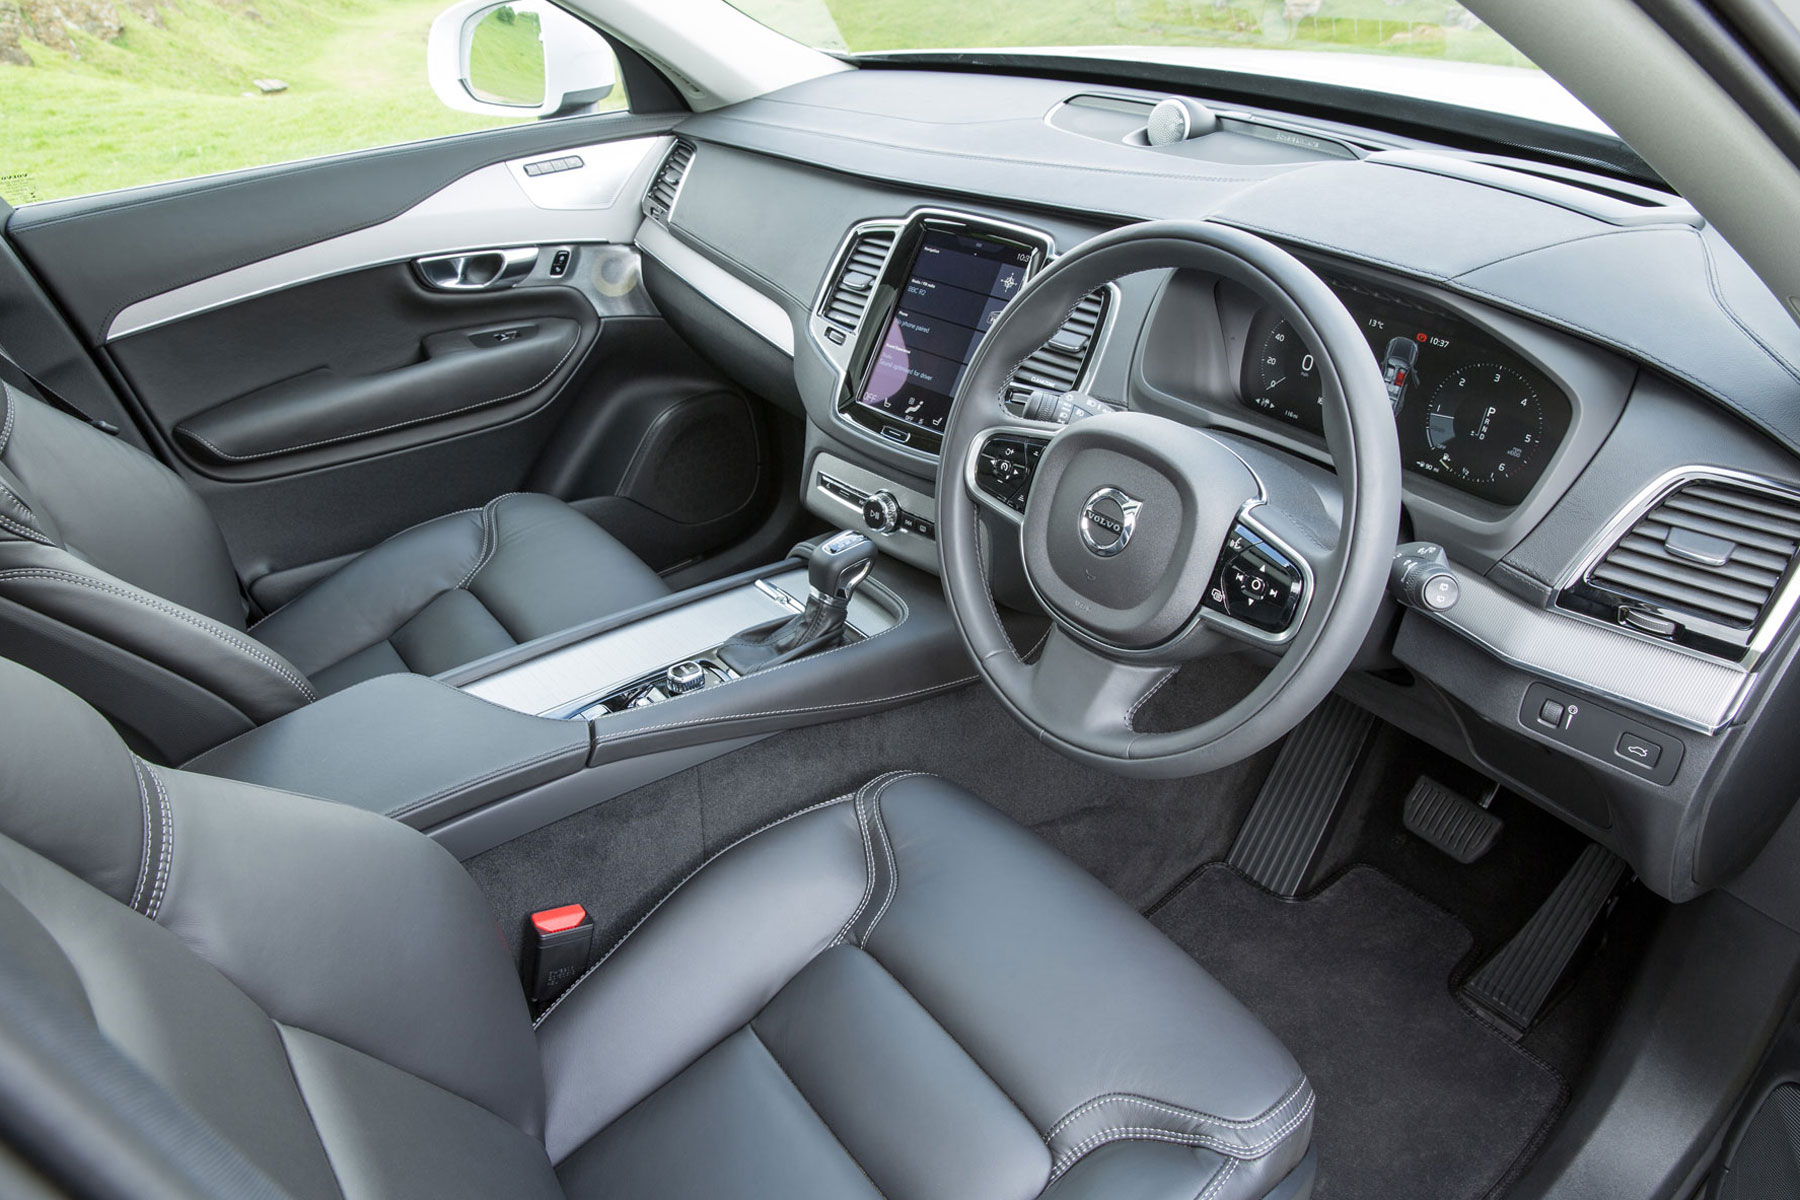 Volvo XC90 review: 2015 UK first drive | Motoring Research